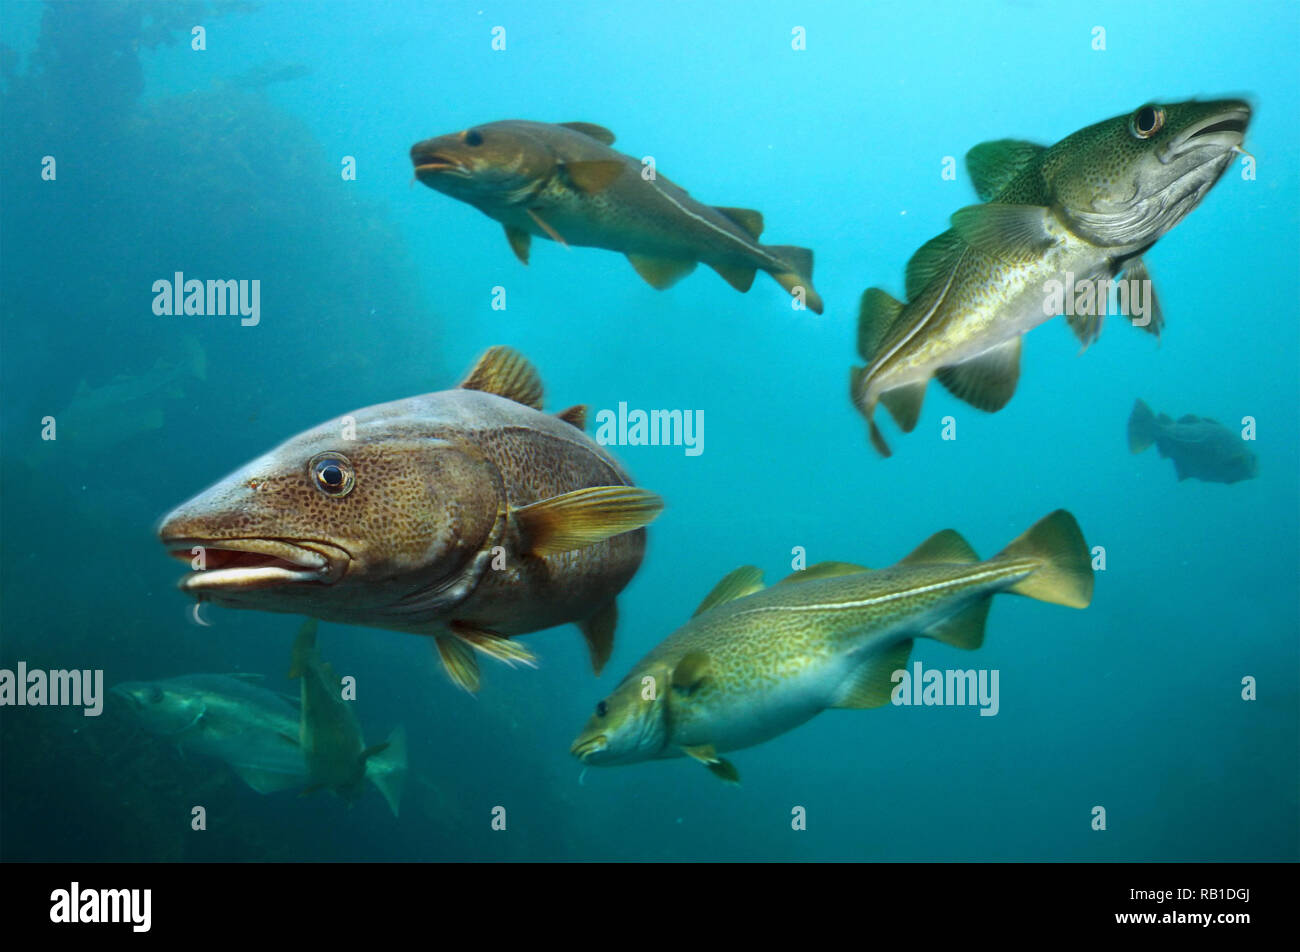 Atlantic cod, Gadus morhua, shoal. Atlantic cod was not only an economic mainstay for many people but also a dominant member of the food chain - Stock Image